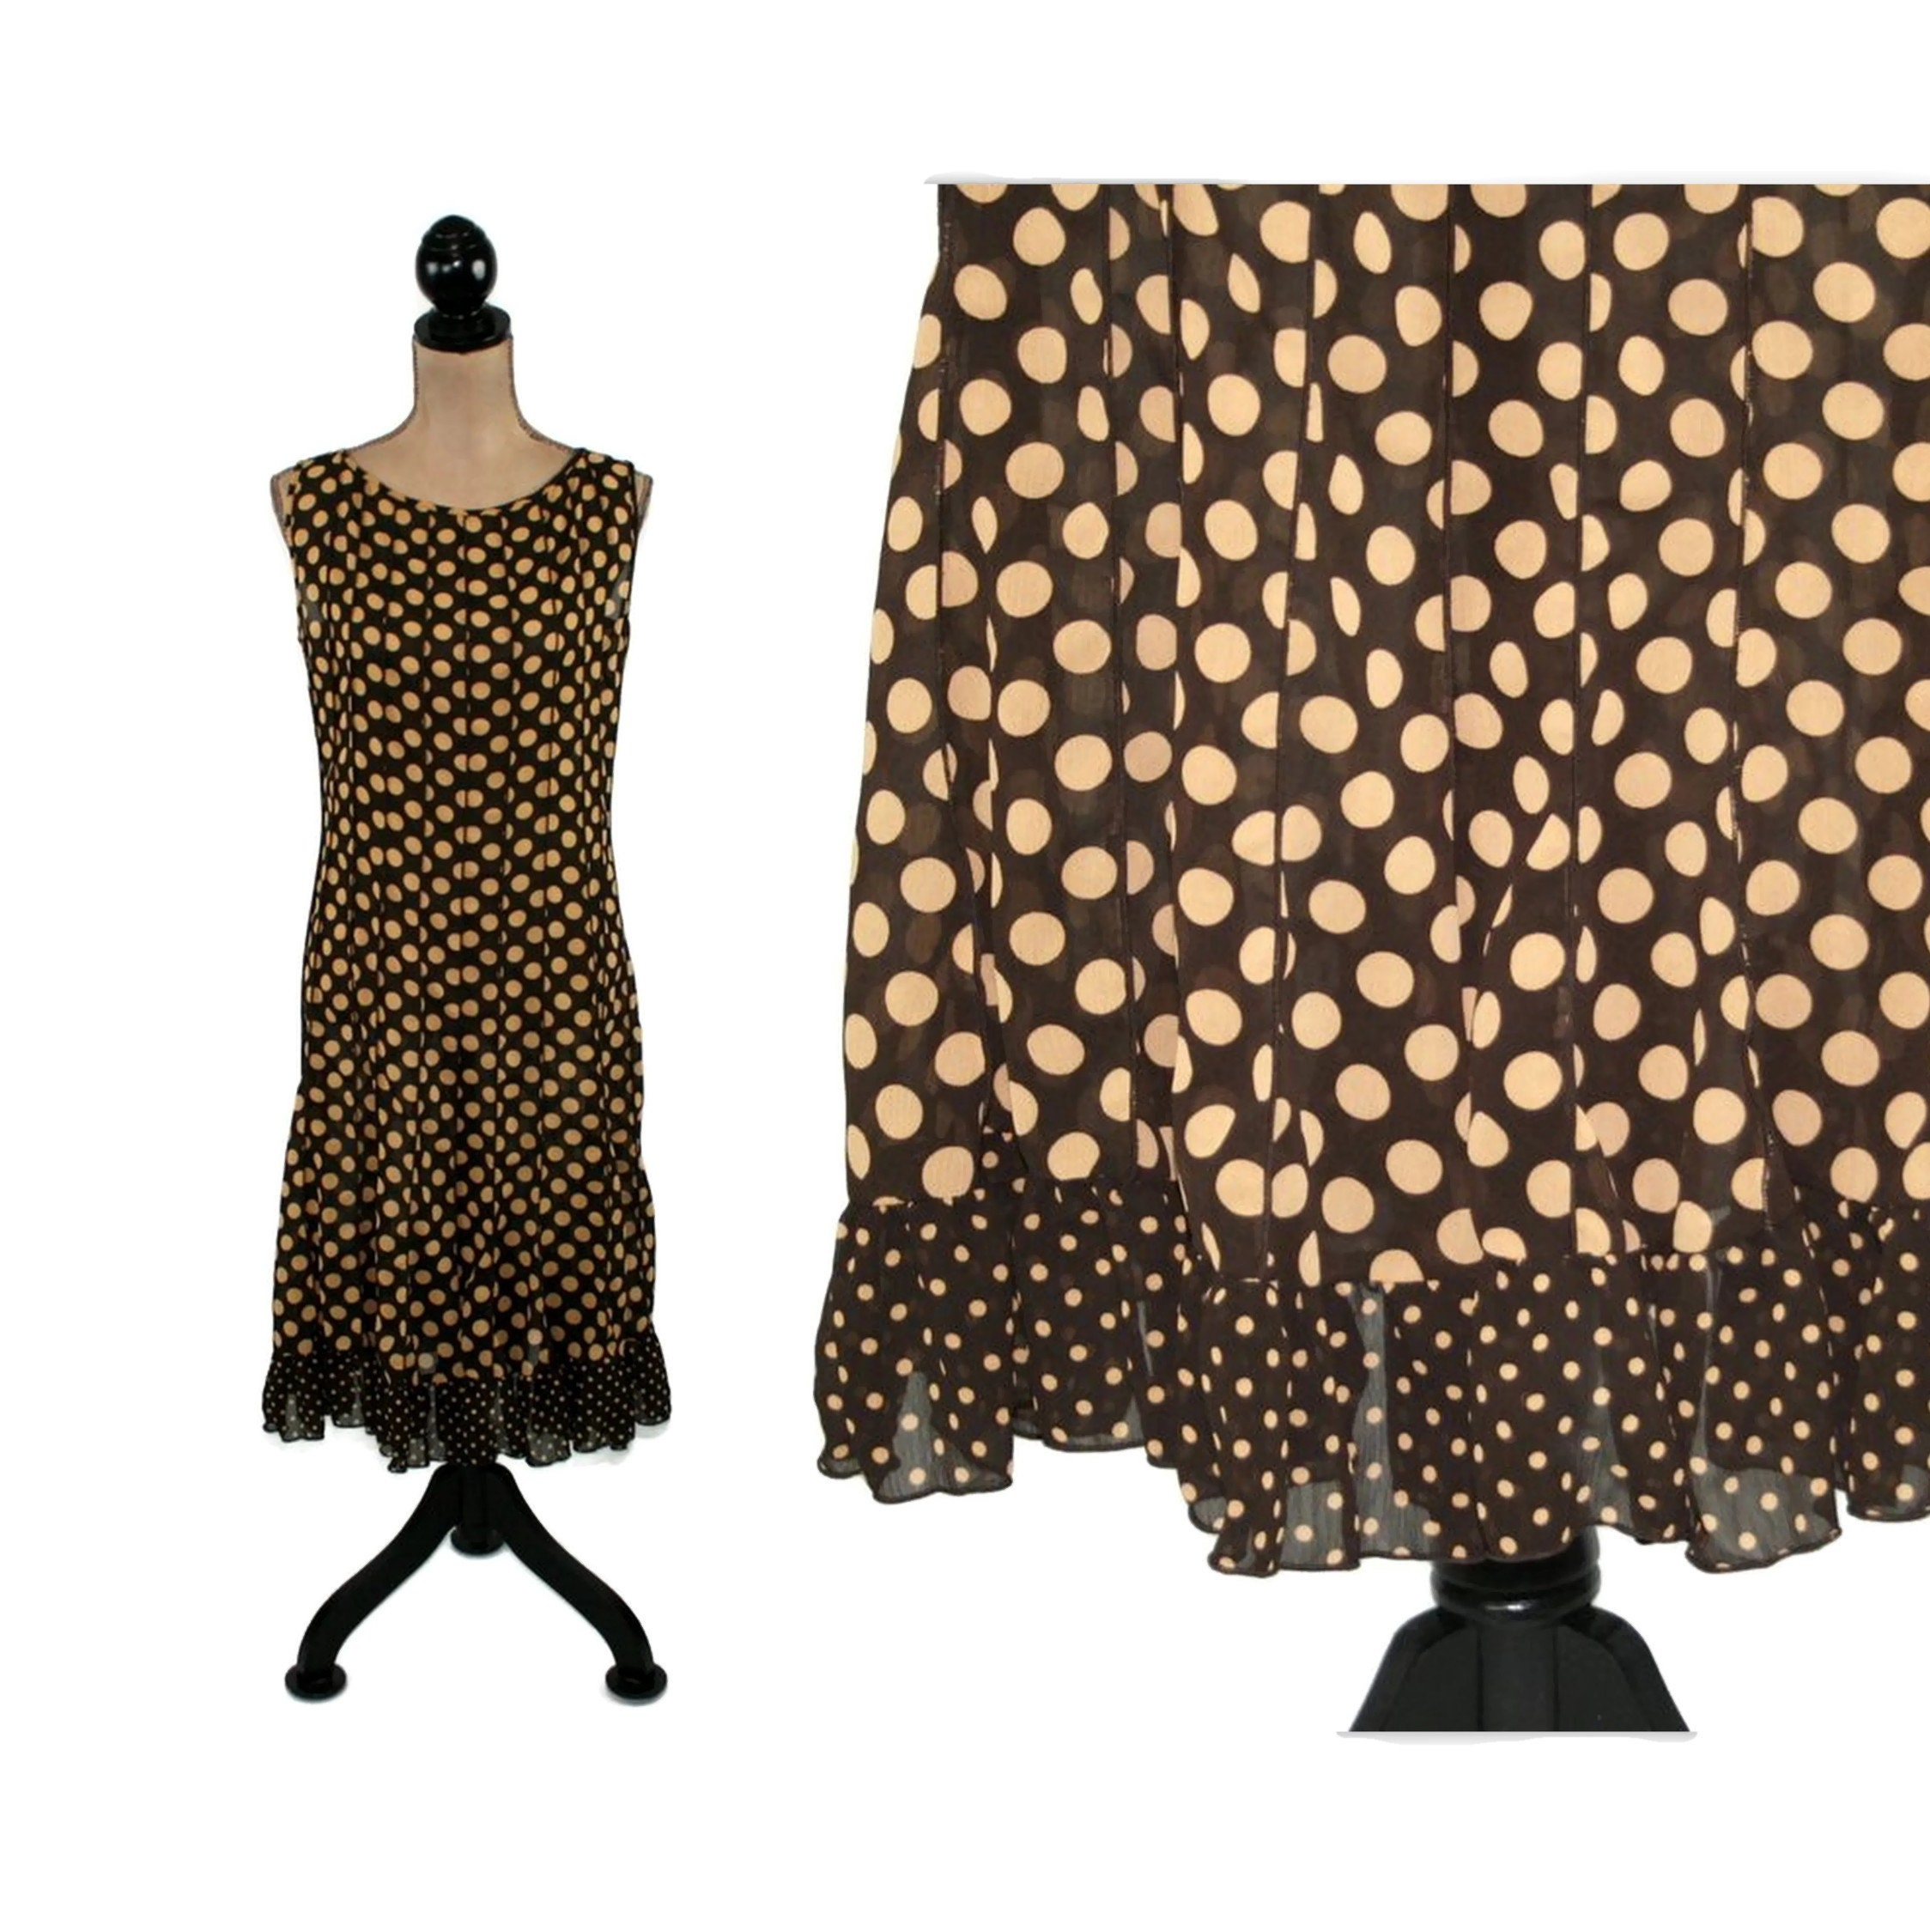 Brown chiffon polka dot dress